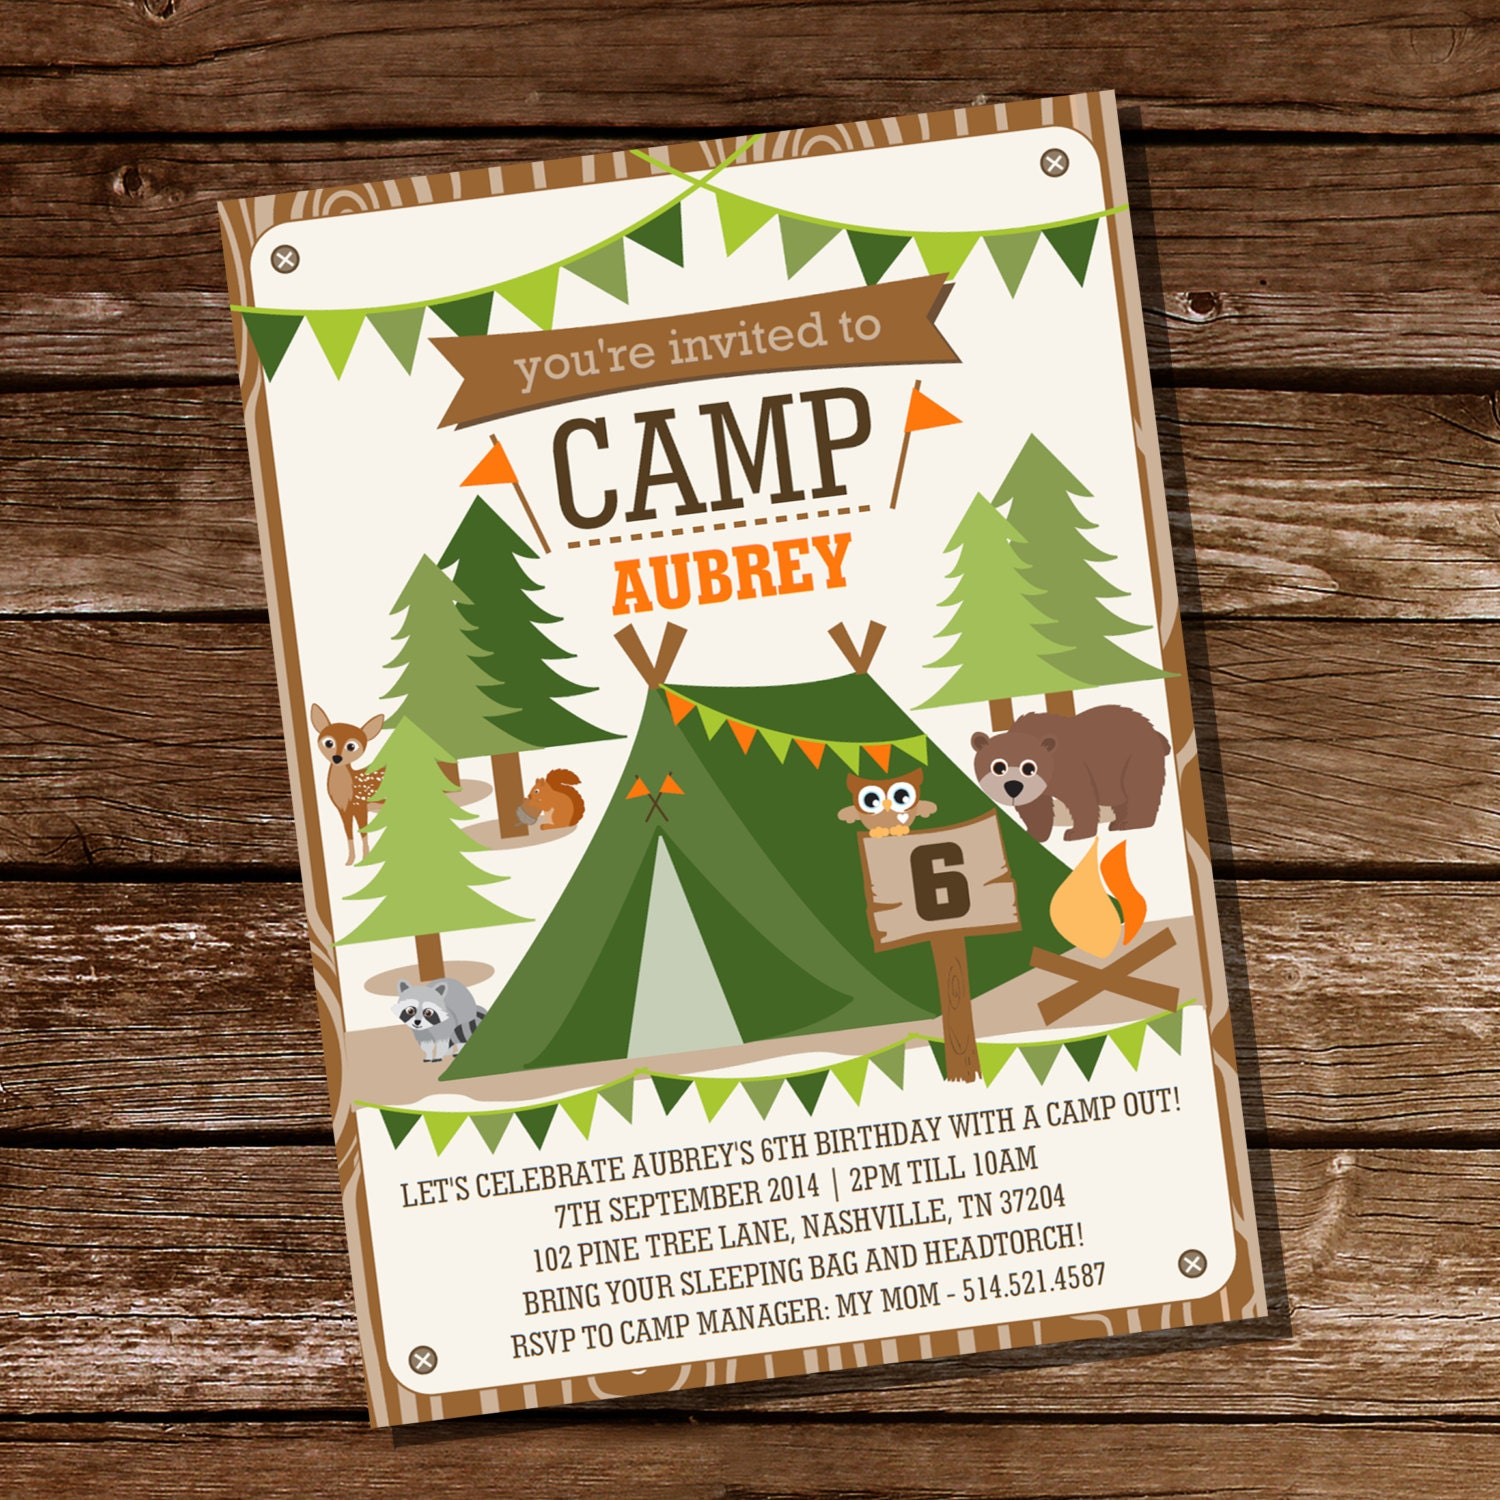 Camping Theme Invitations: Camping Tent Party Invitation For Boys And Girls Camp Out